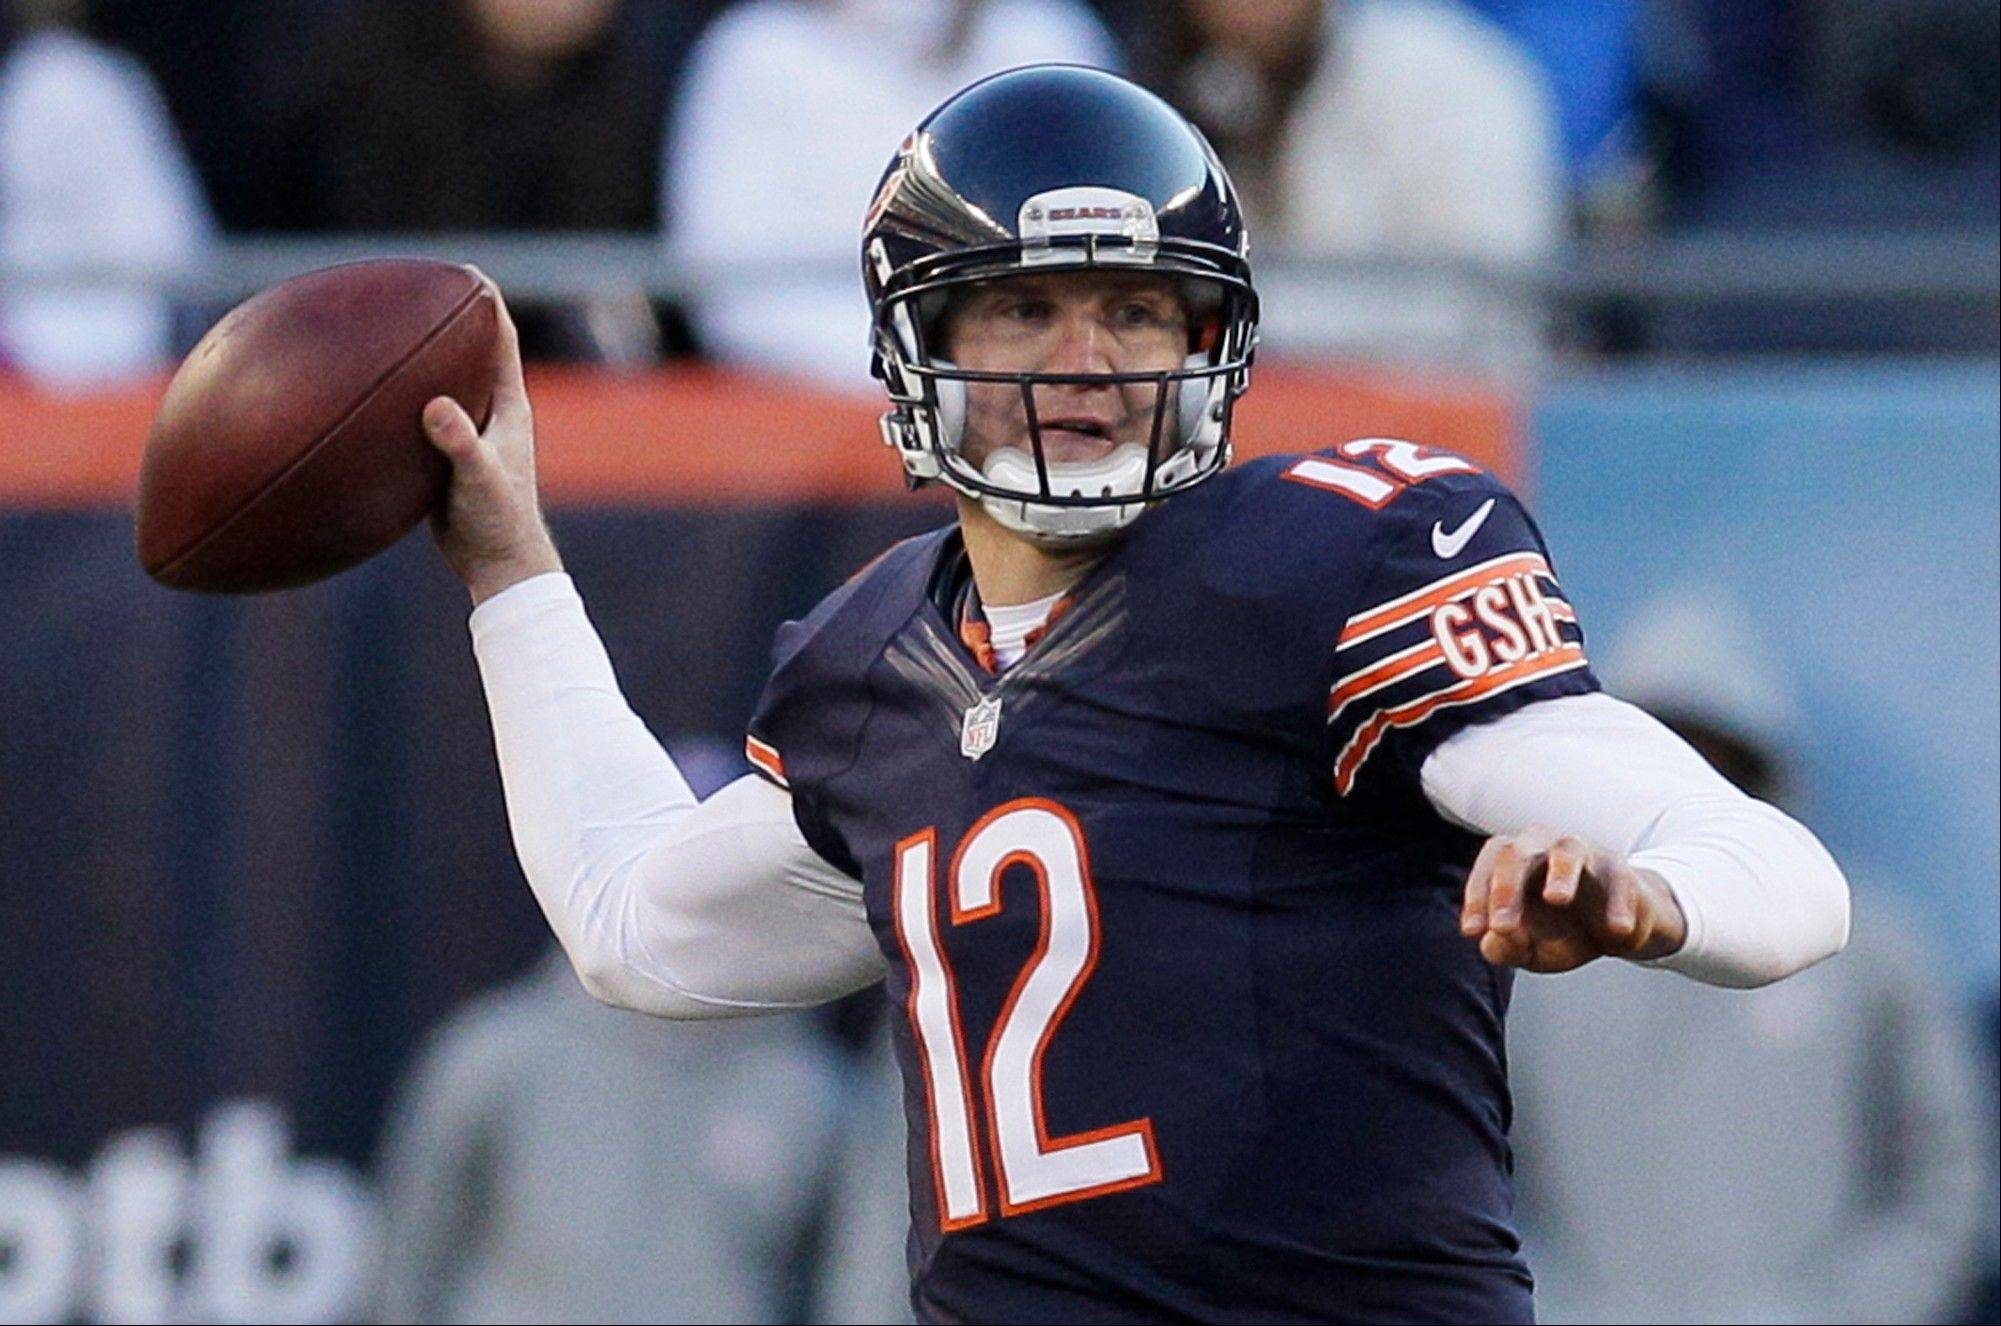 Josh McCown's career passer rating was 71.2 coming into this season, but he's compiled a 103.2 rating thus far in 2013.